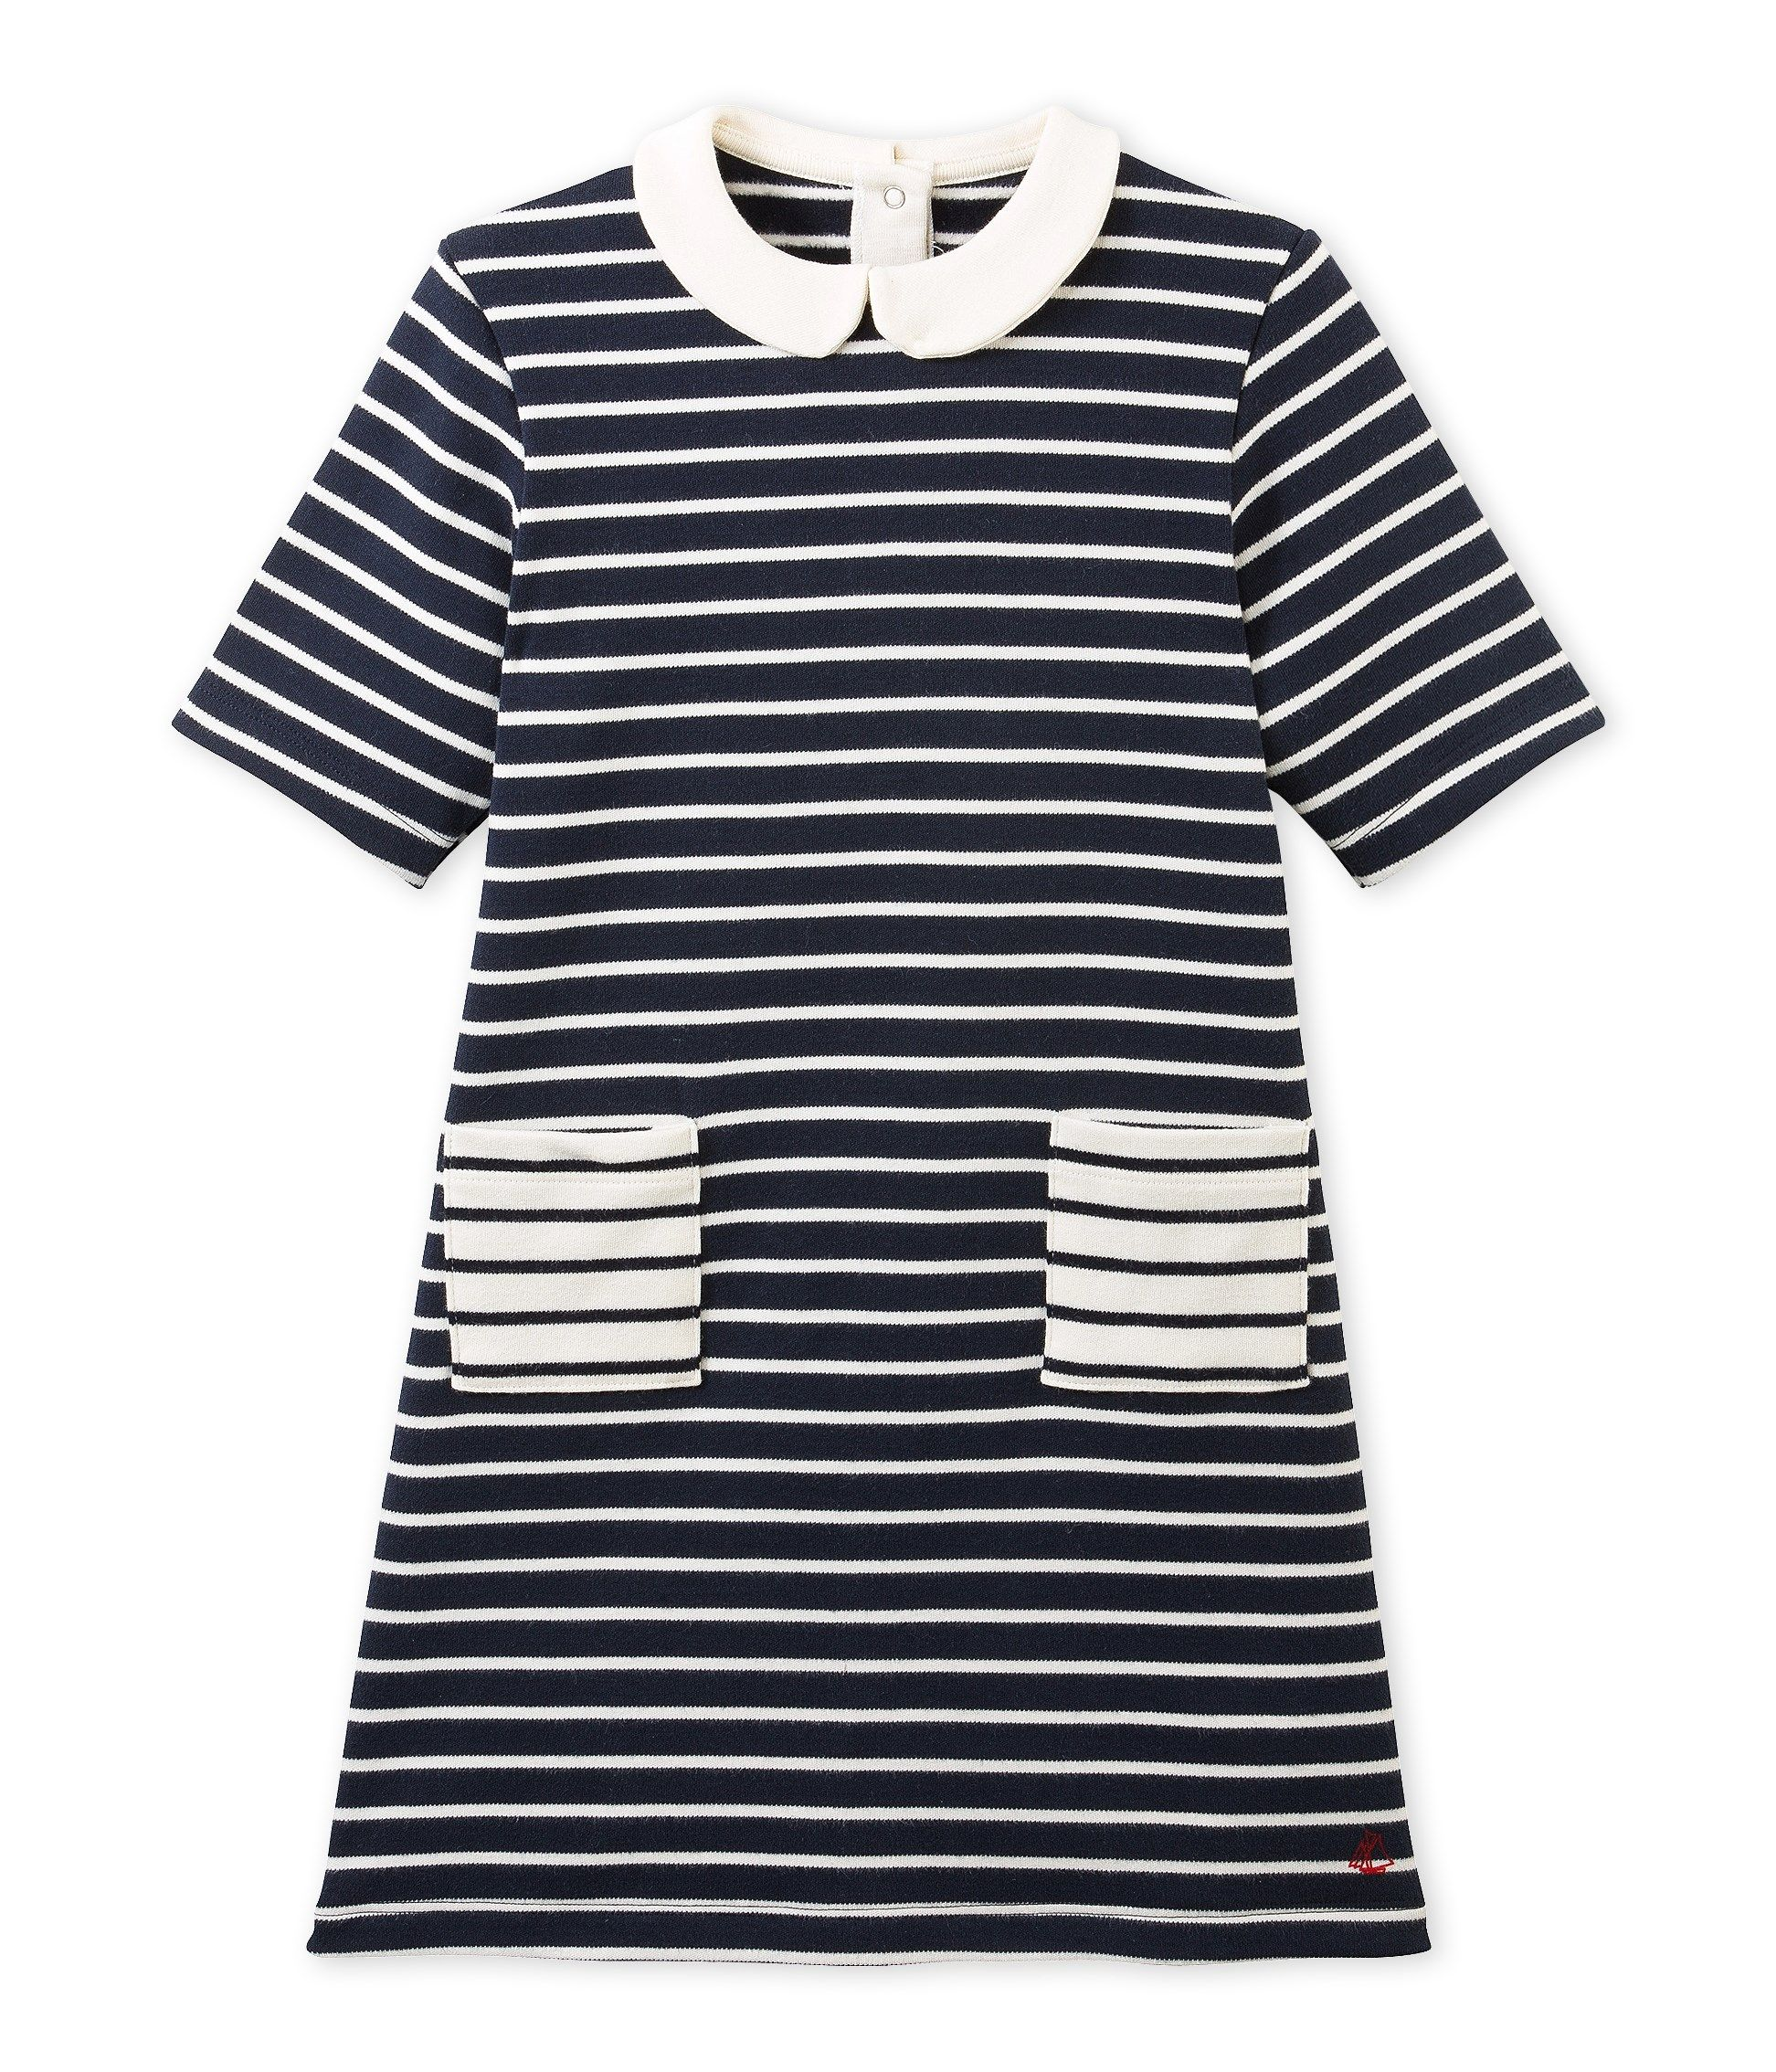 668a214167ae7 The timeless breton stripe top. The perfect sailor sweater. The famous  yellow raincoat. Discover the Petit Bateau iconics!